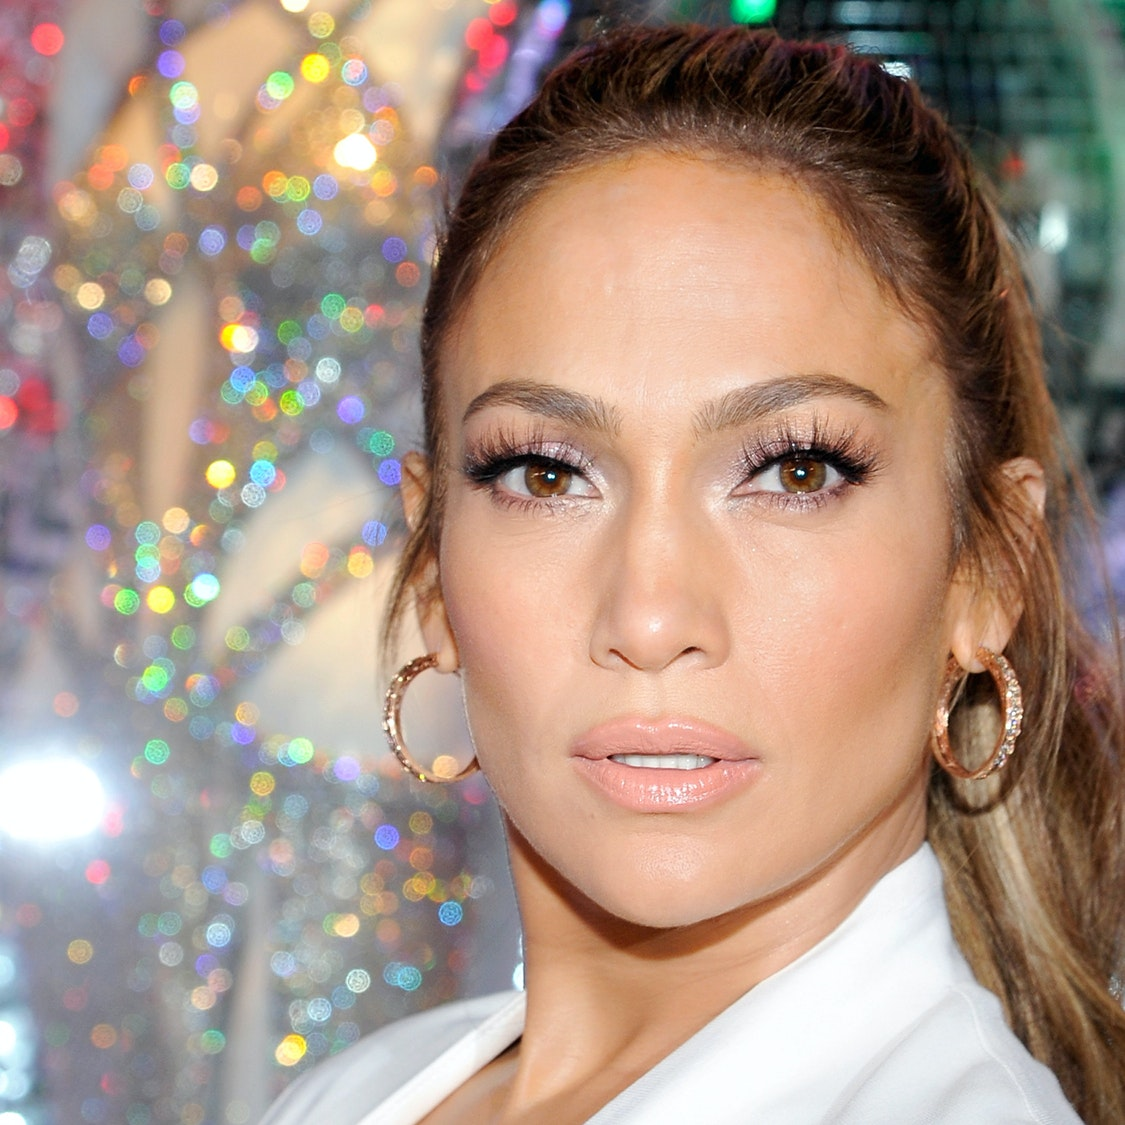 Get the Look: J. Lo's Legendary, Luminous Glow